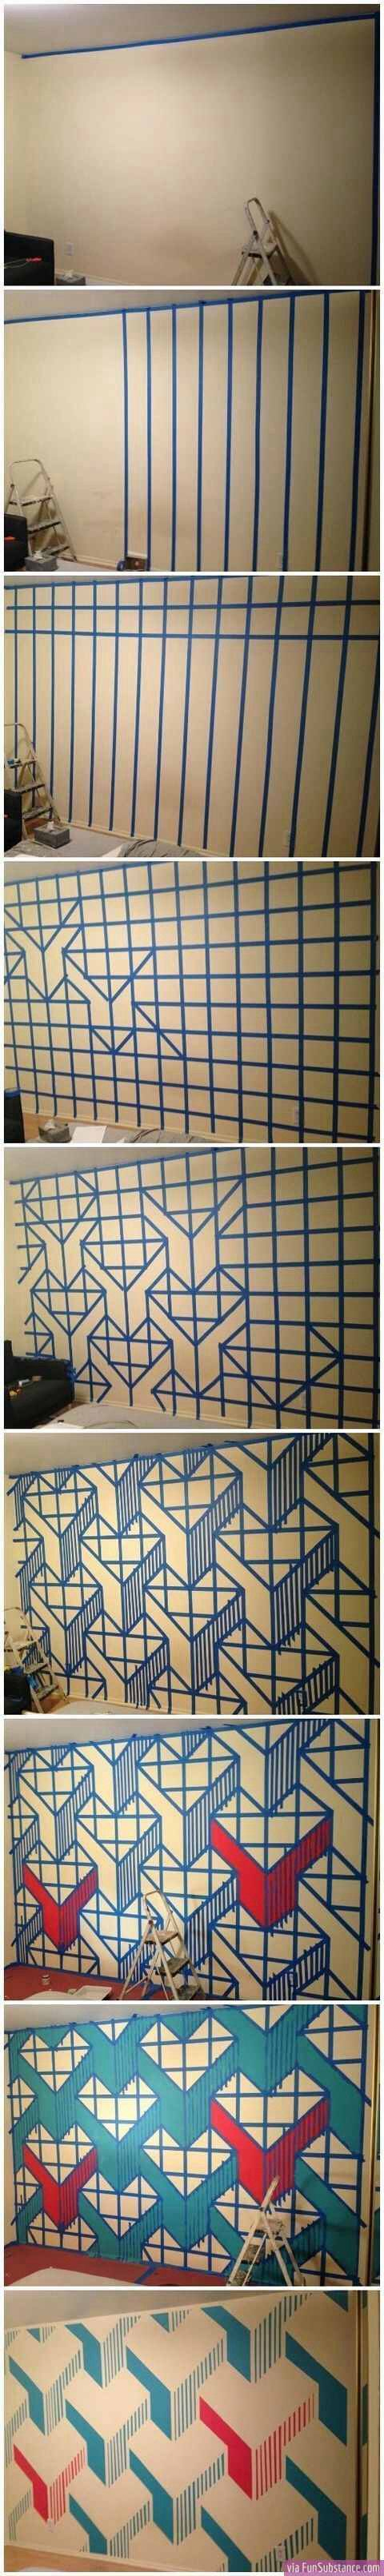 Wall Painting Designs With Tape : Wall tape paint designs graphic